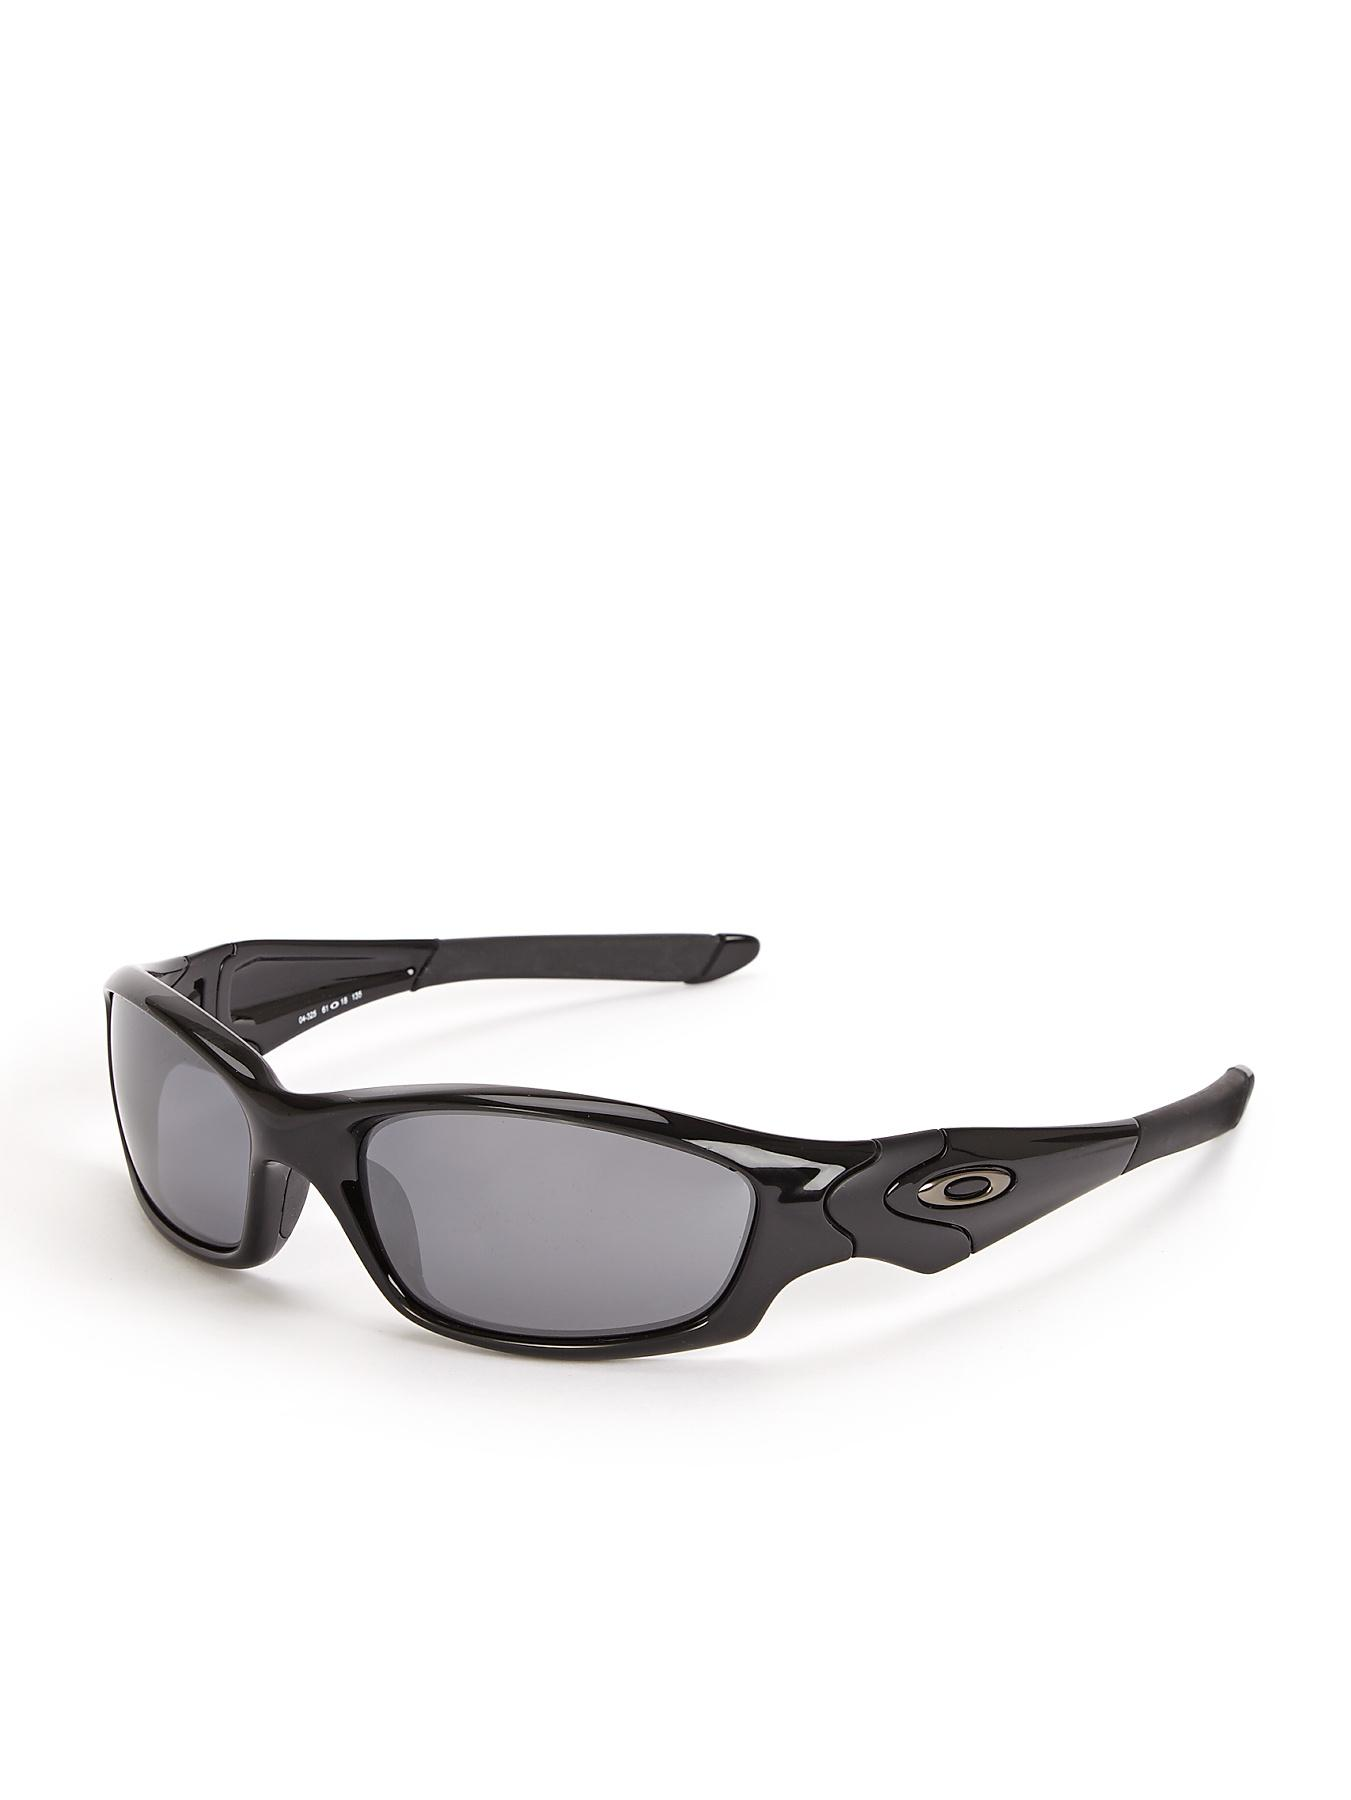 Oakley Straight Jacket Sunglasses - Black, Black